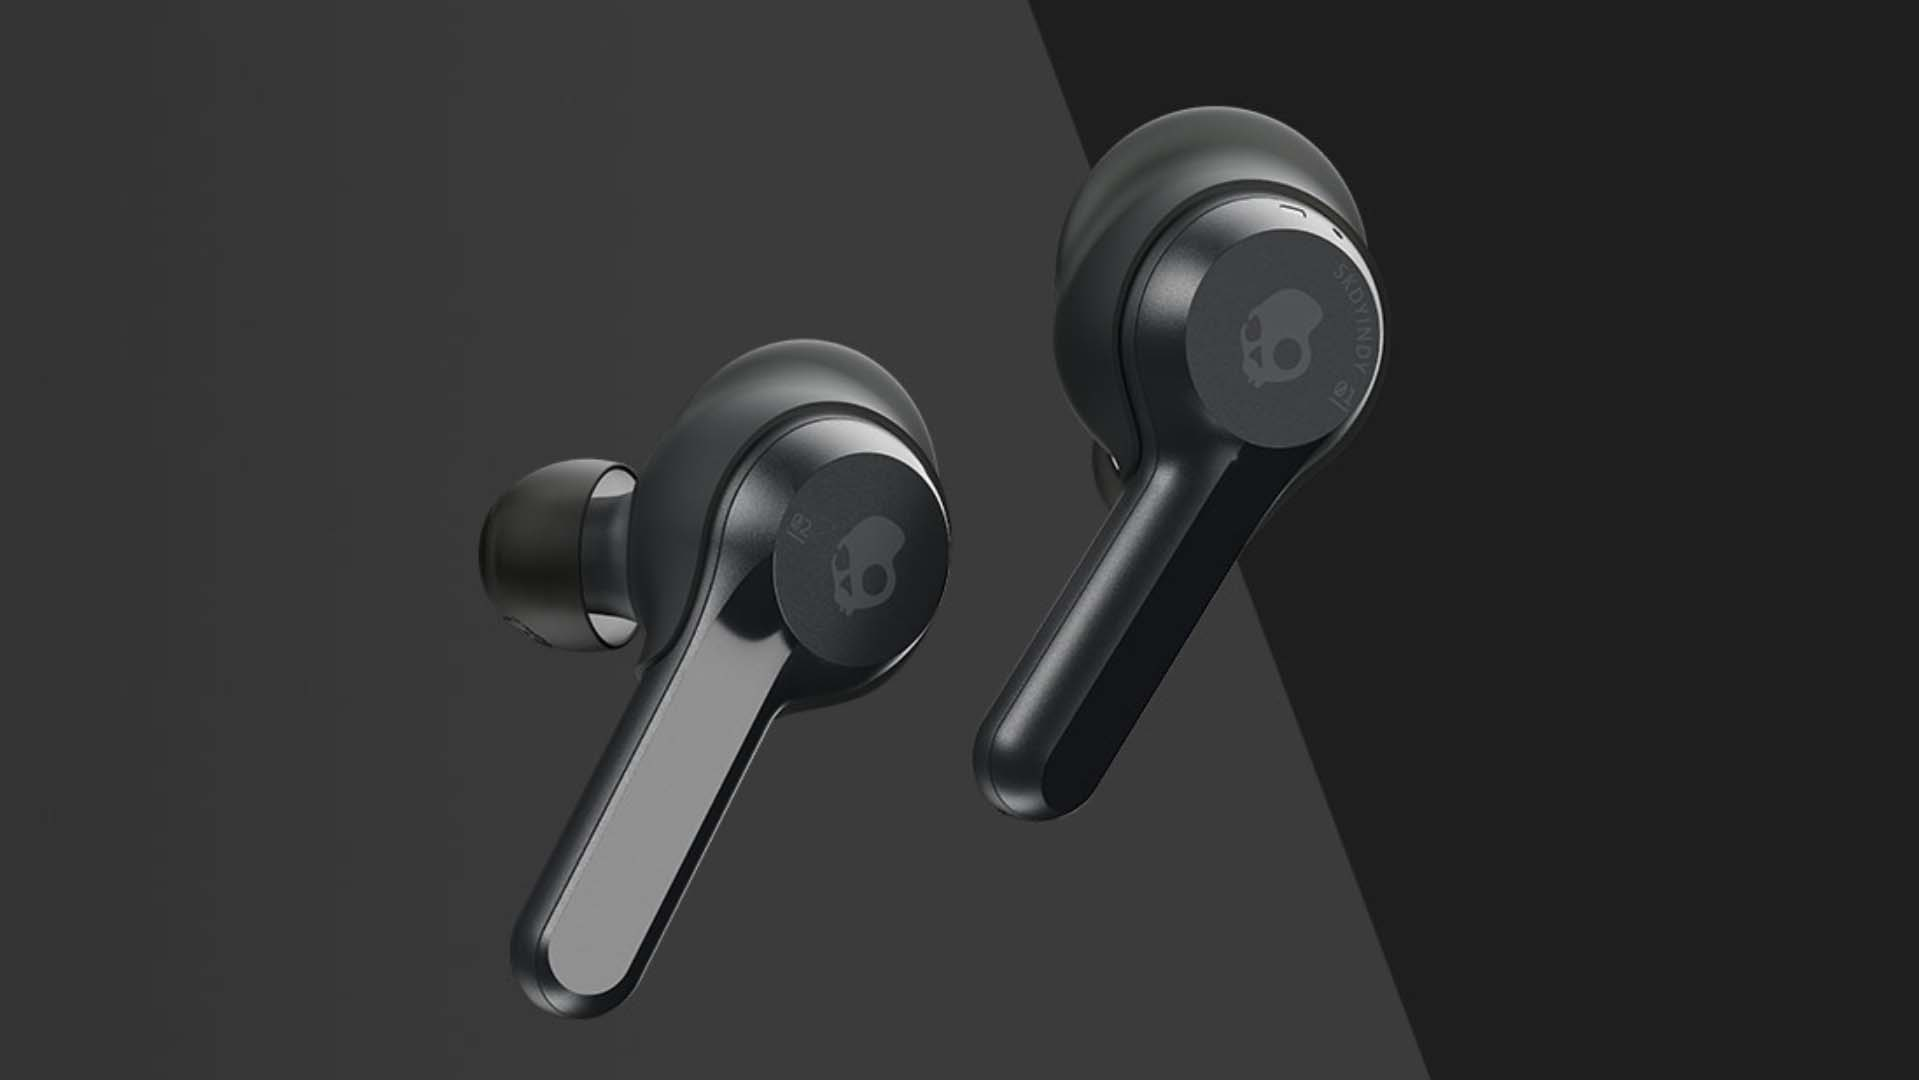 7765351dd61 Skullcandy launches budget true wireless earbuds with AirPods-style design  | TechRadar